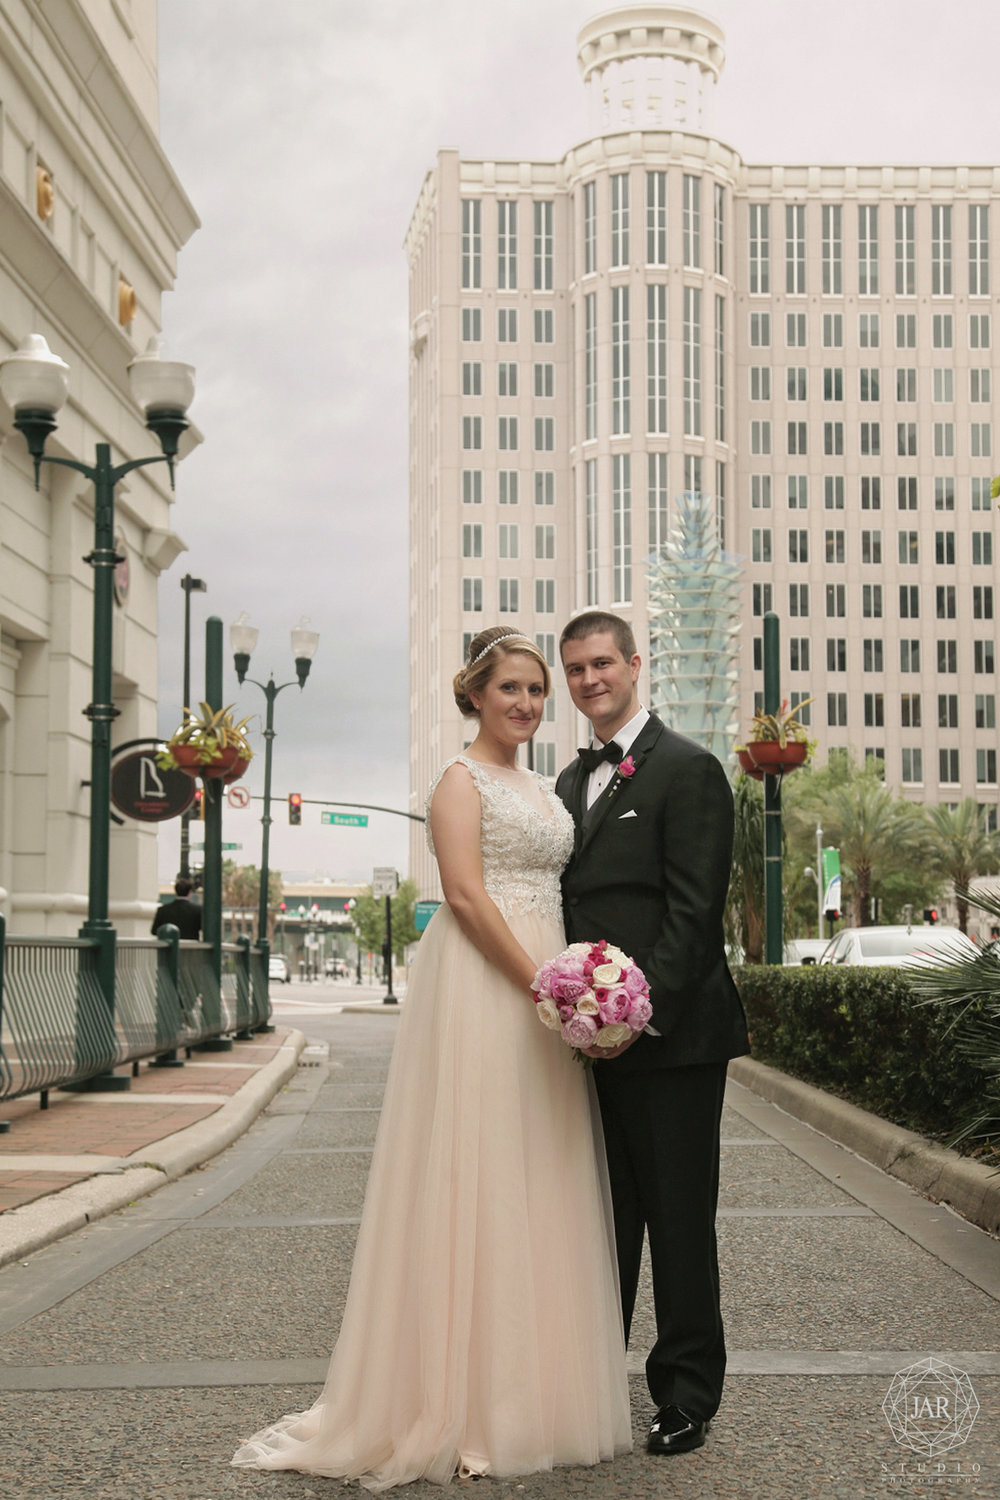 42-bride-groom-downtown-orlando-jarstudio-photography.JPG